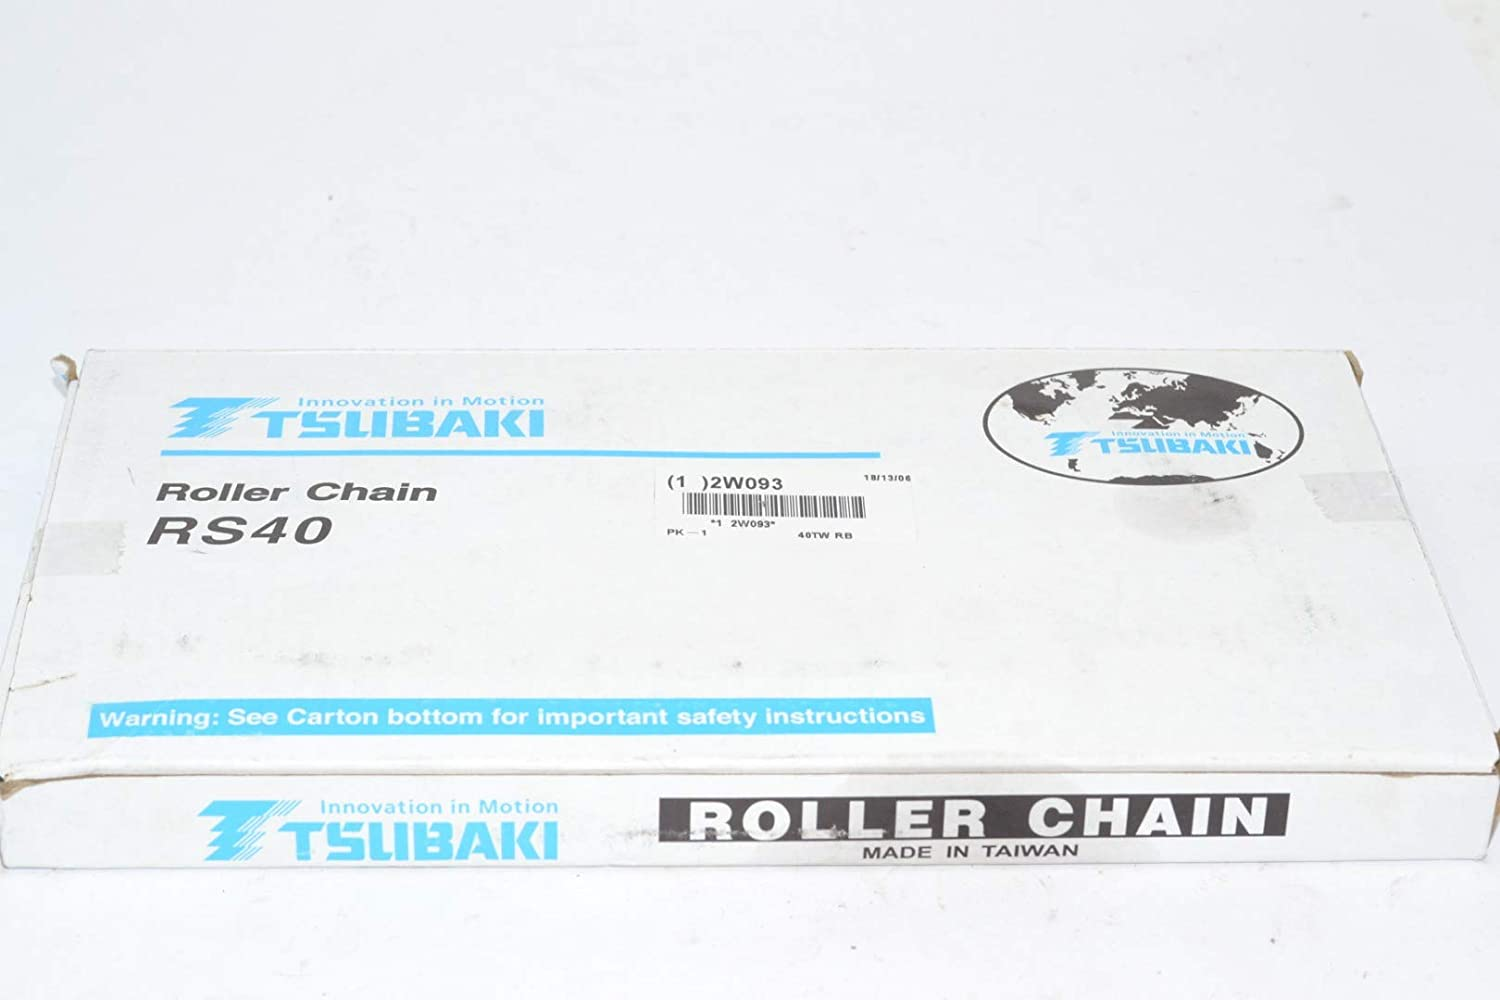 Roller Chain Riveted 10 Ft. 40 Ansi